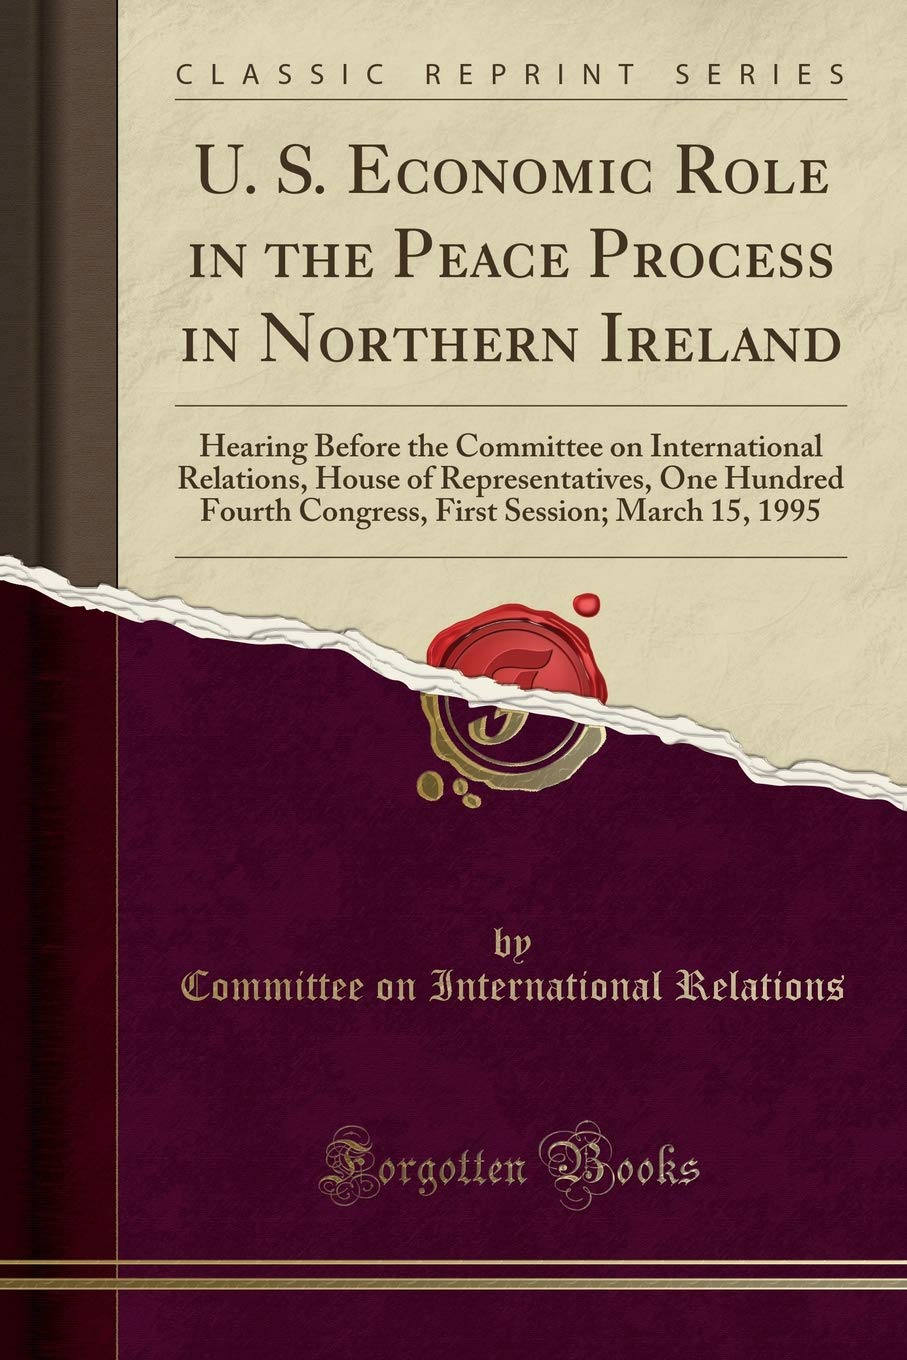 Download U. S. Economic Role in the Peace Process in Northern Ireland: Hearing Before the Committee on International Relations, House of Representatives, One ... Session; March 15, 1995 (Classic Reprint) pdf